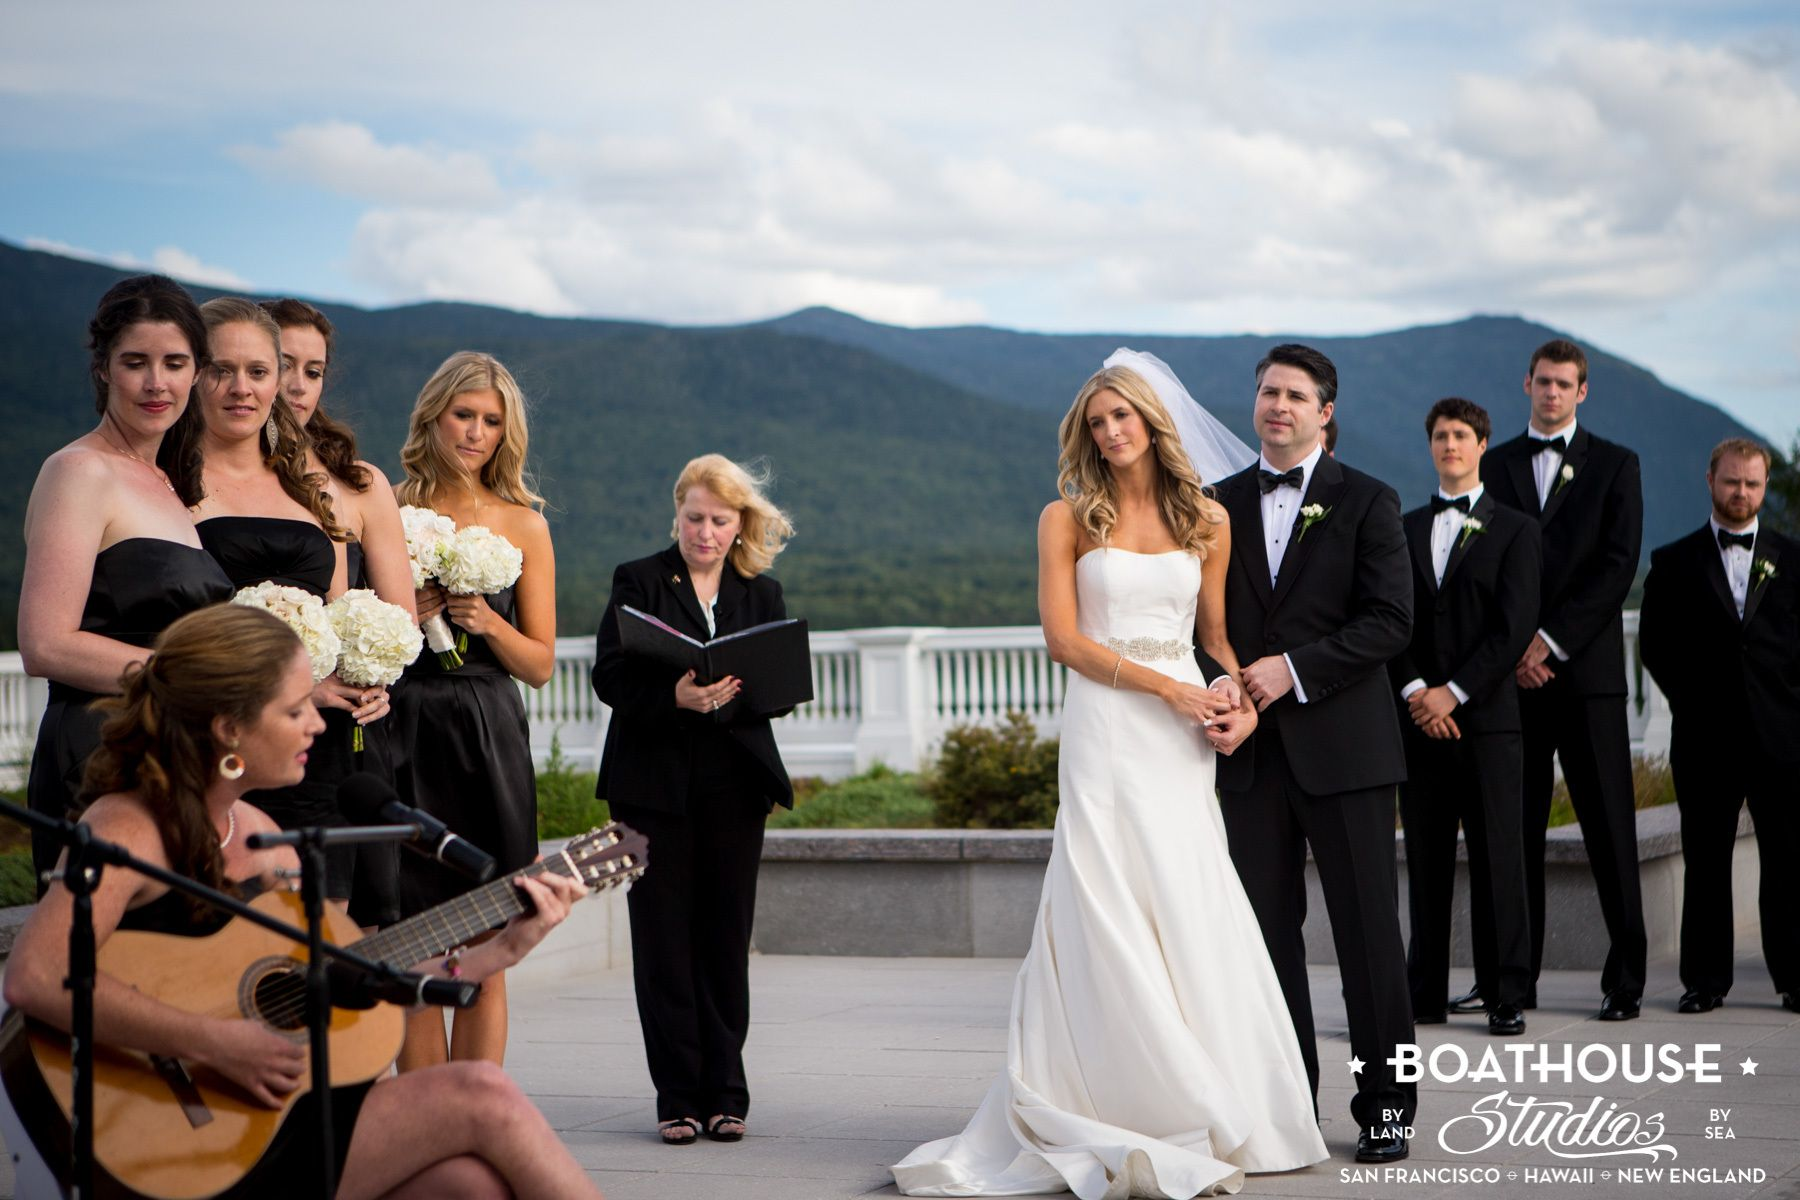 A Mount Washington Hotel Wedding